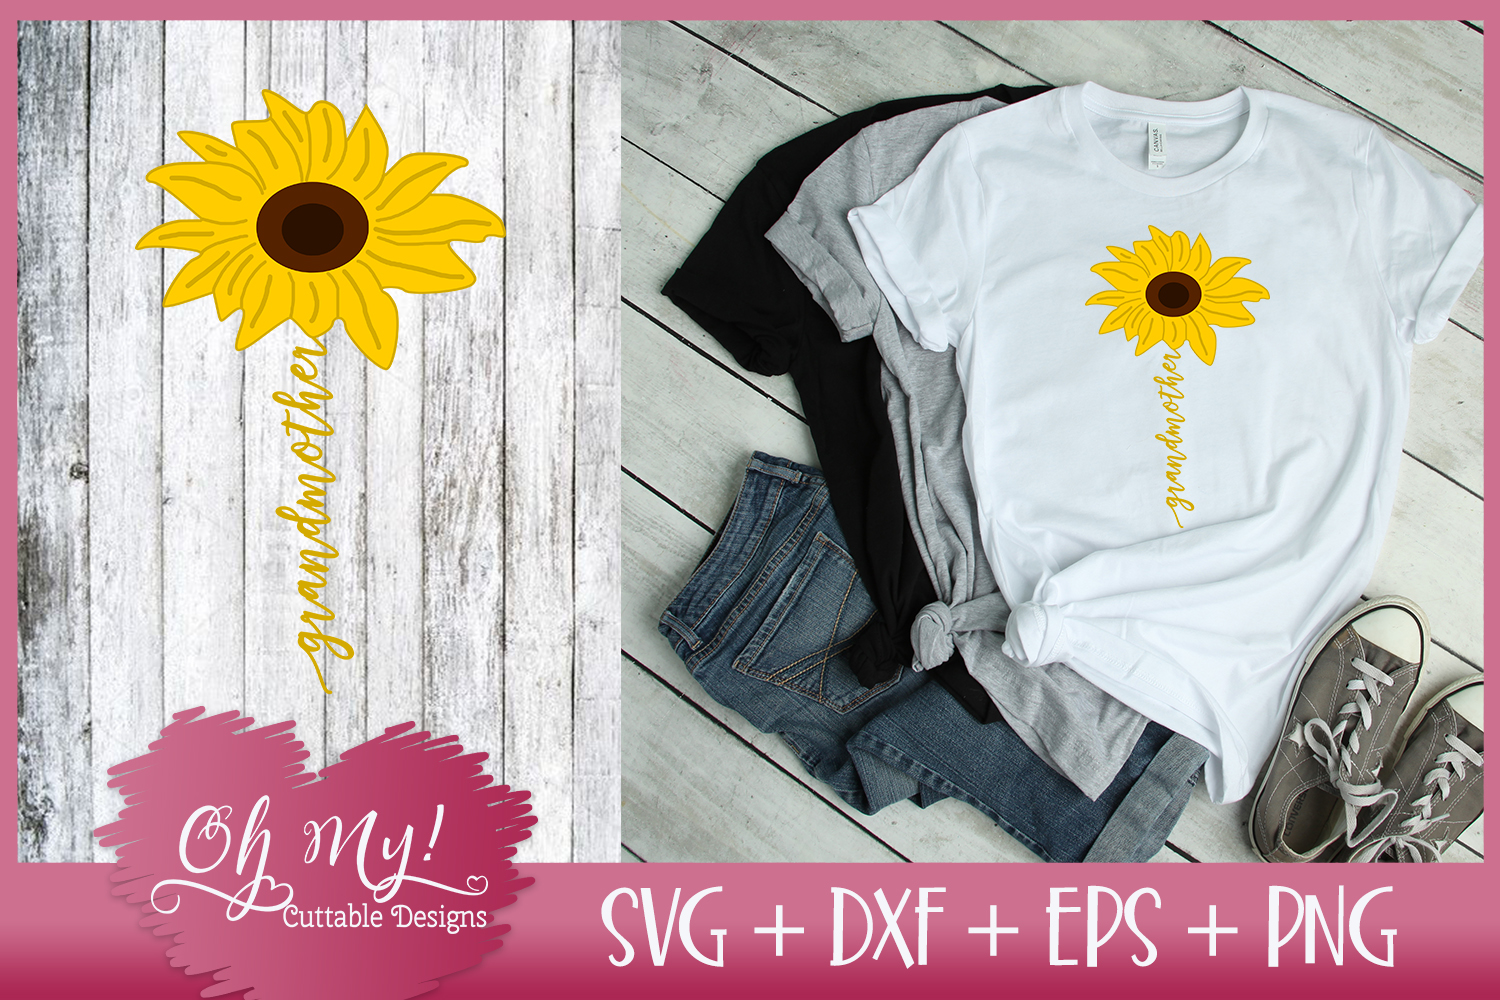 Grandmother Sunflower - SVG EPS DXF PNG Cutting File example image 3